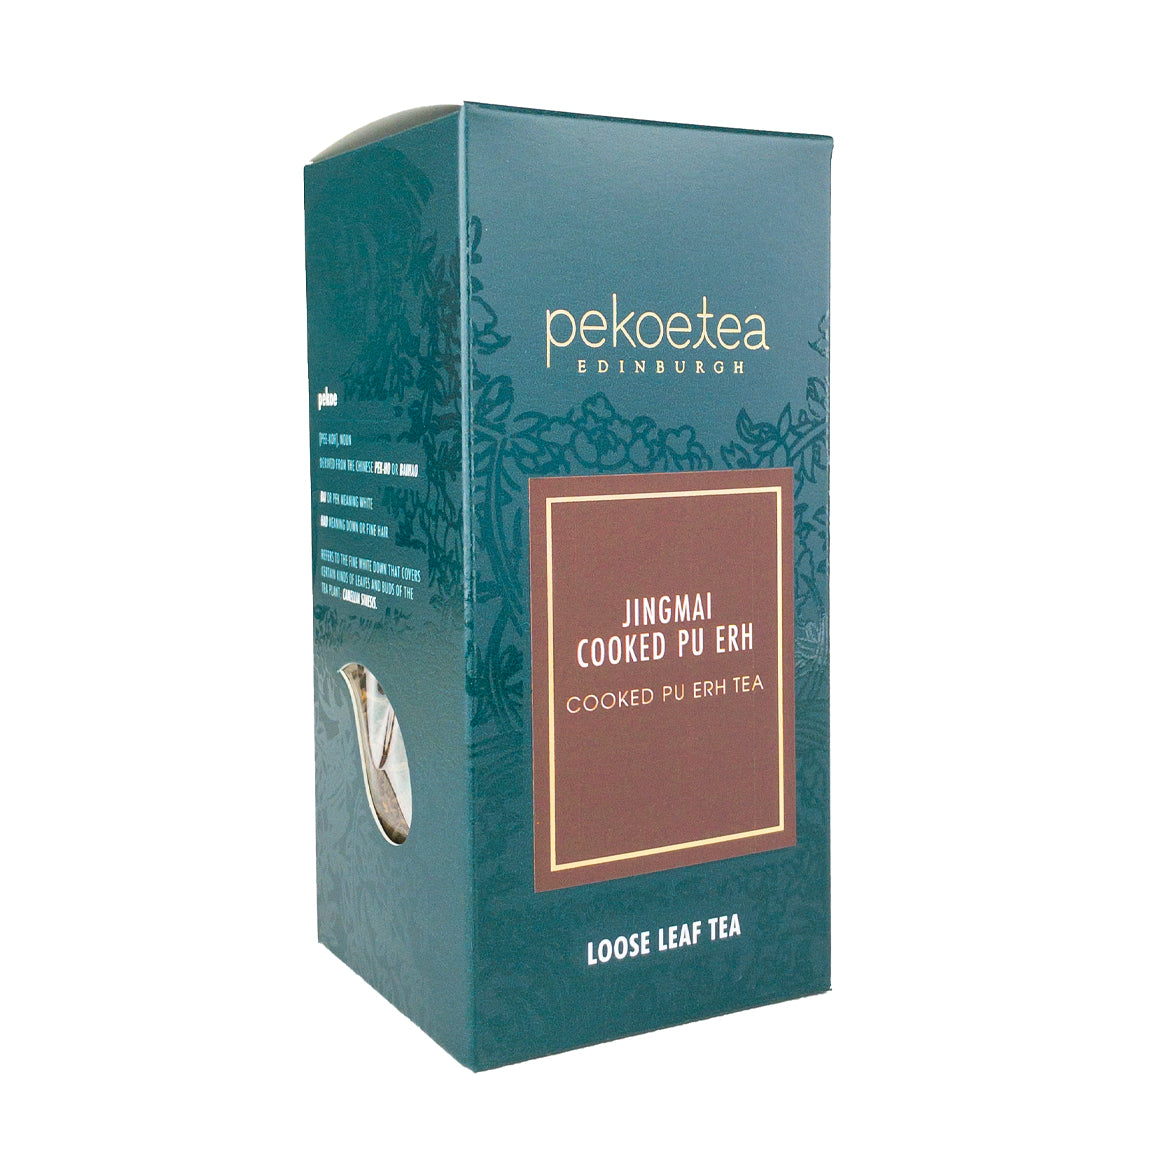 PekoeTea Edinburgh Jingmai Cooked Pu Erh Chinese Cooked Pu Erh Tea Loose Leaf Box